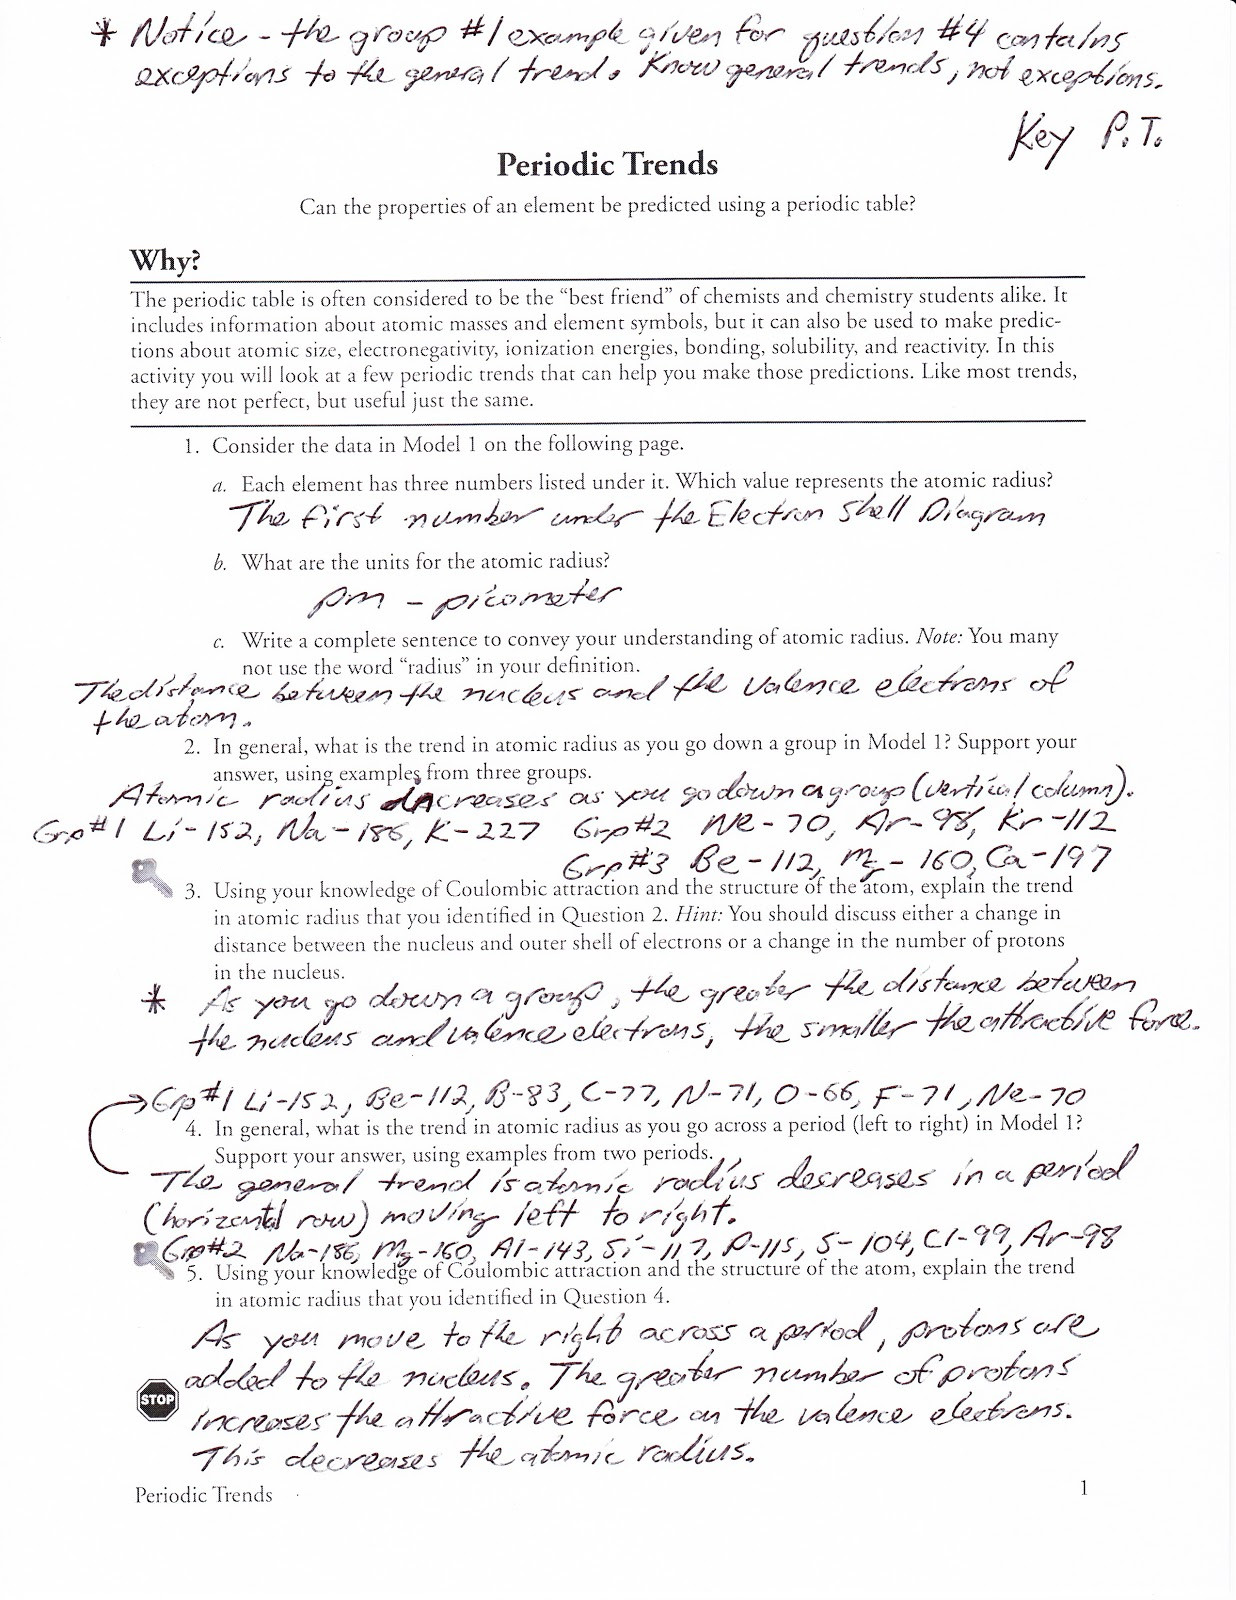 Periodic Trends Worksheet Answers Periodic Trends Worksheet and Answers